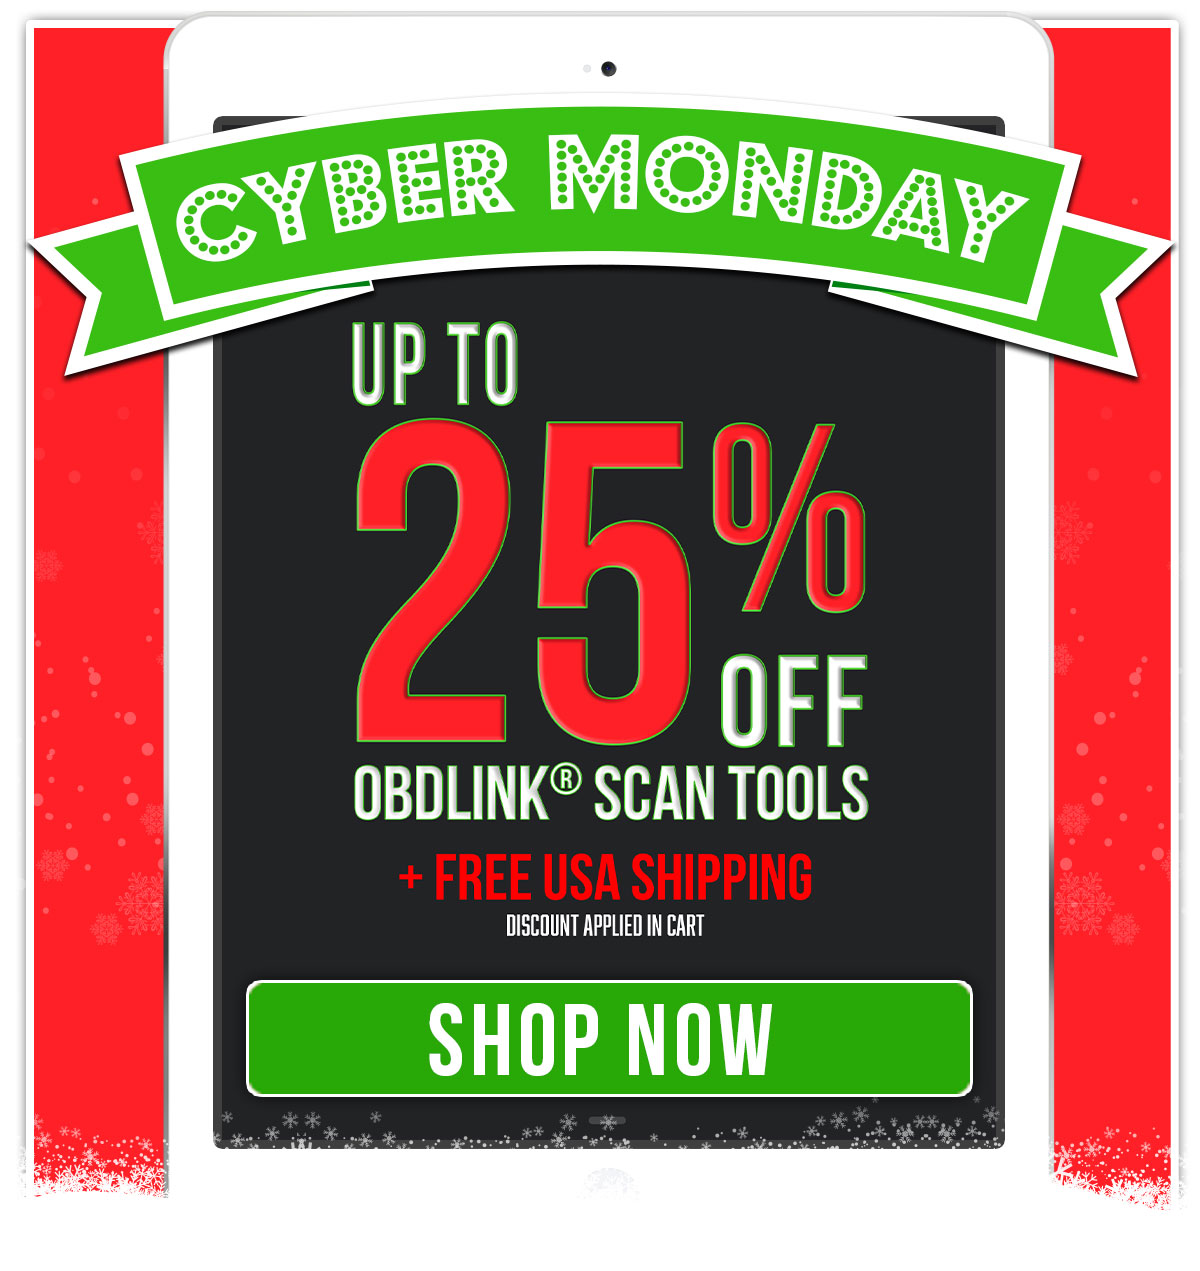 Cyber Monday Sale - Up to 25% Off Scan Tools